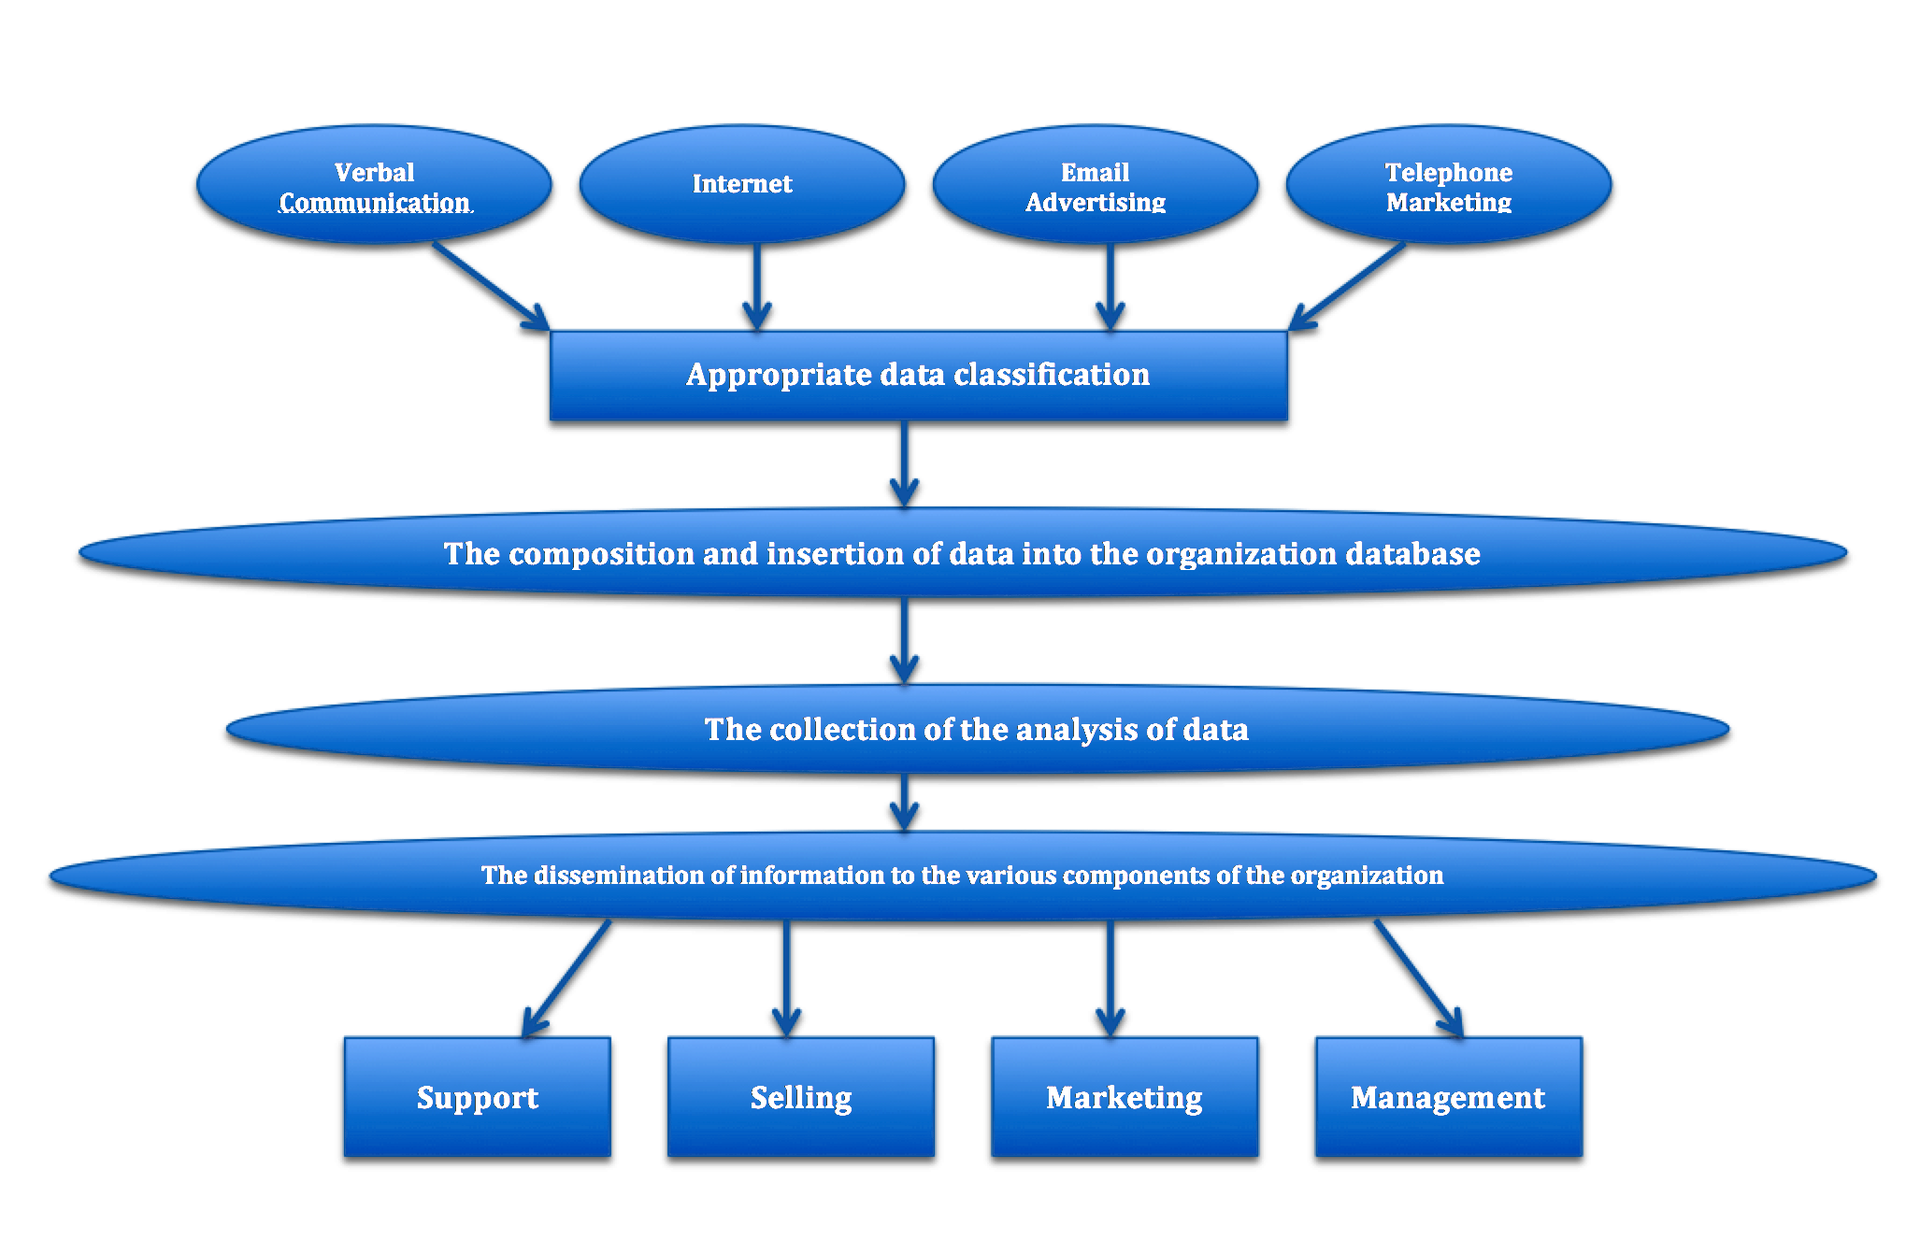 customer relationship management system Definition of customer relationship management (crm): a management  philosophy  it integrates back and front office systems to create a database of  customer.